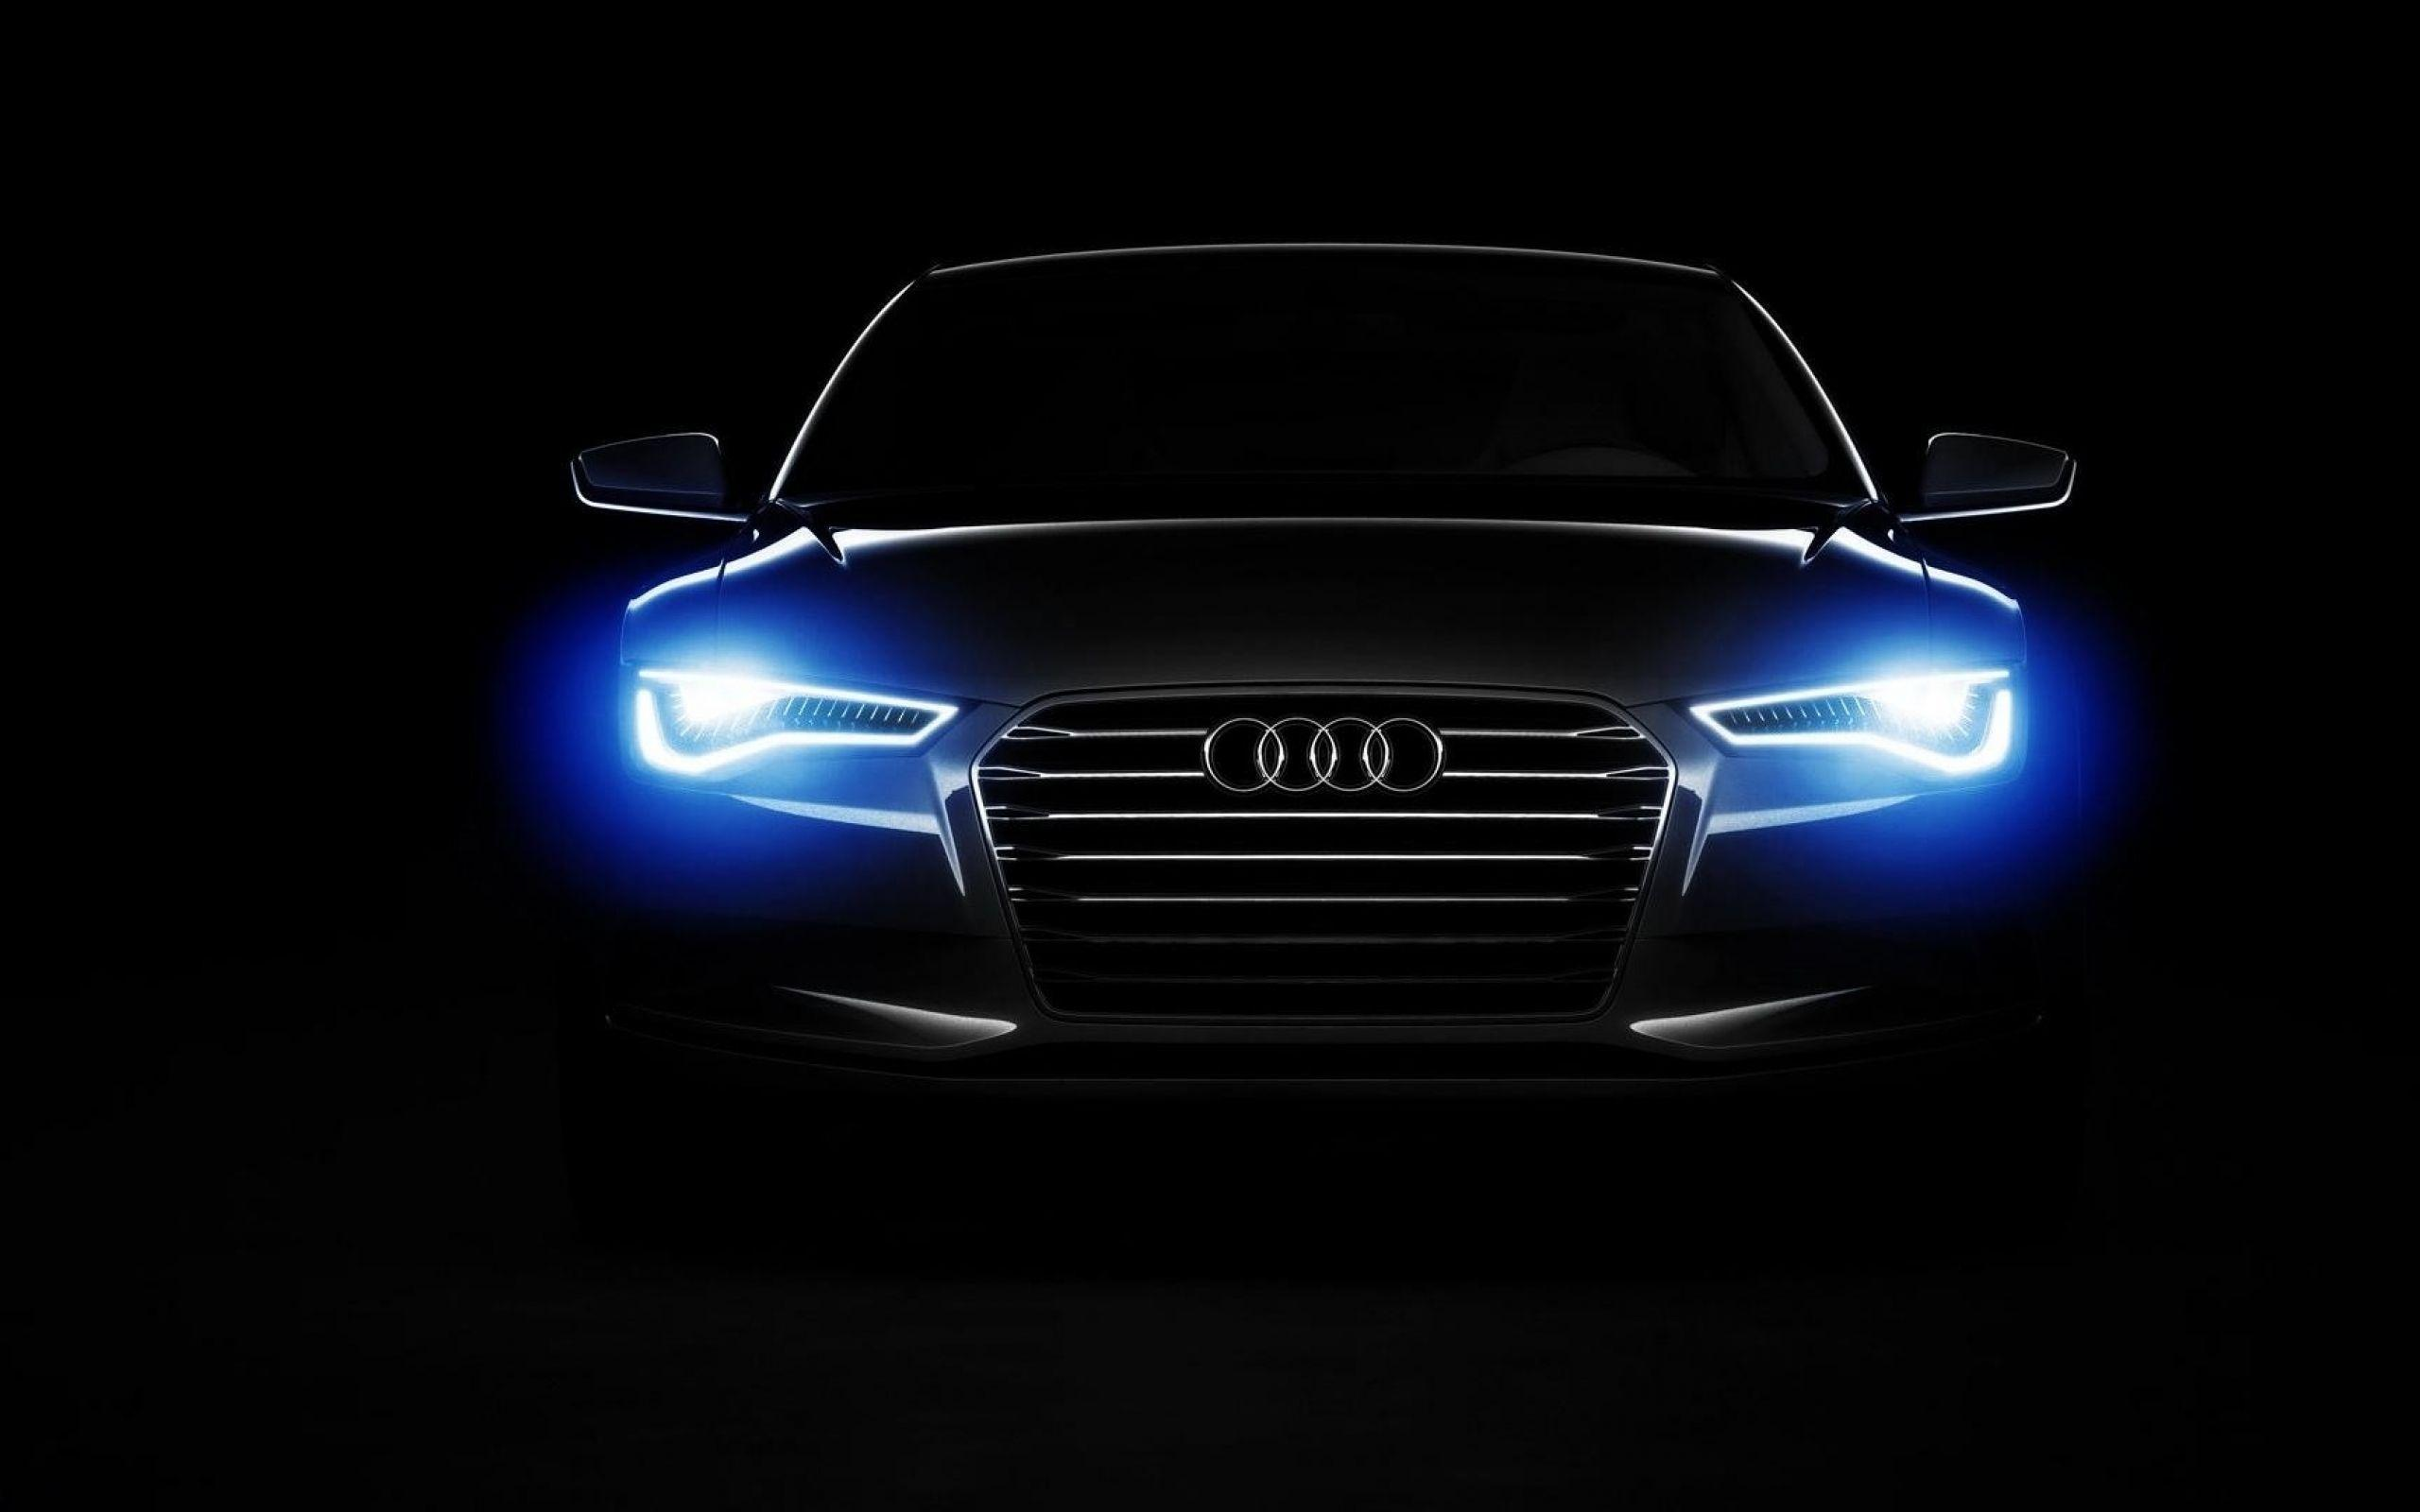 IGW128: Audi RS7 Wallpapers, Awesome Audi RS7 Backgrounds